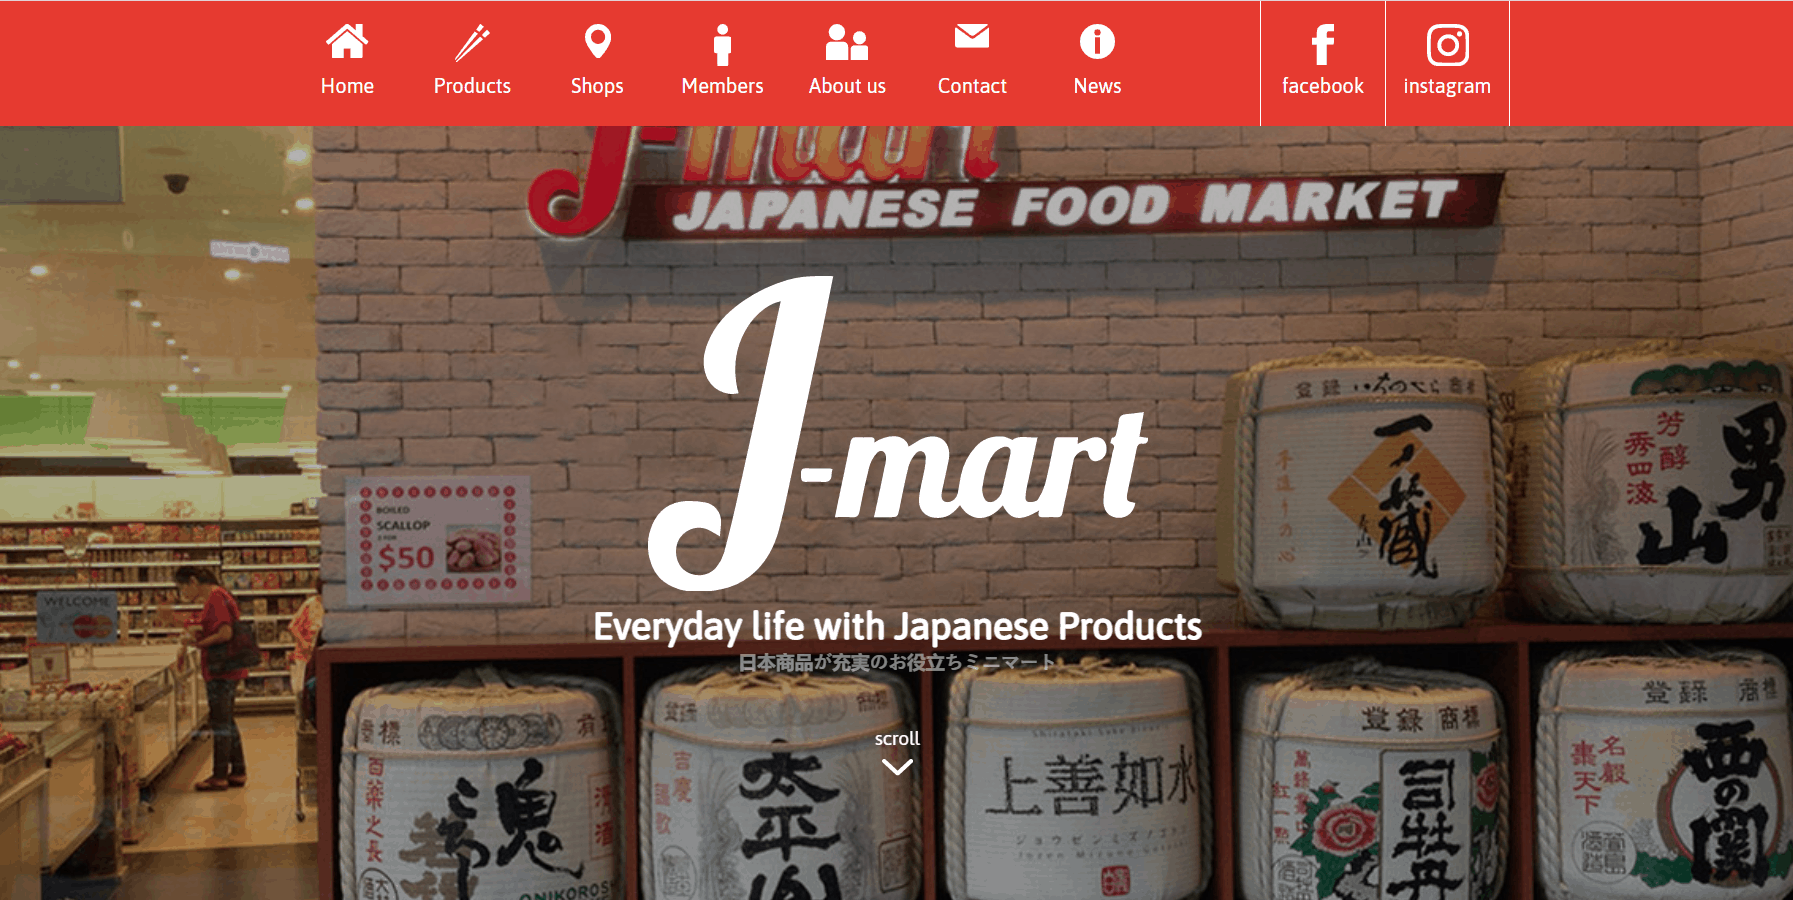 J-Mart is the best Japanese grocery stores and ingredient suppliers, Where can I buy Japanese groceries in Singapore?, J-Mart - Japanese Grocery Store in Singapore, Where can I buy Japanese food online?,j mart online shopping,j-mart singapore online, j-mart mini mart, j-mart products, j-mart outlets, j mart owner, j mart nz, j mart supermarket,